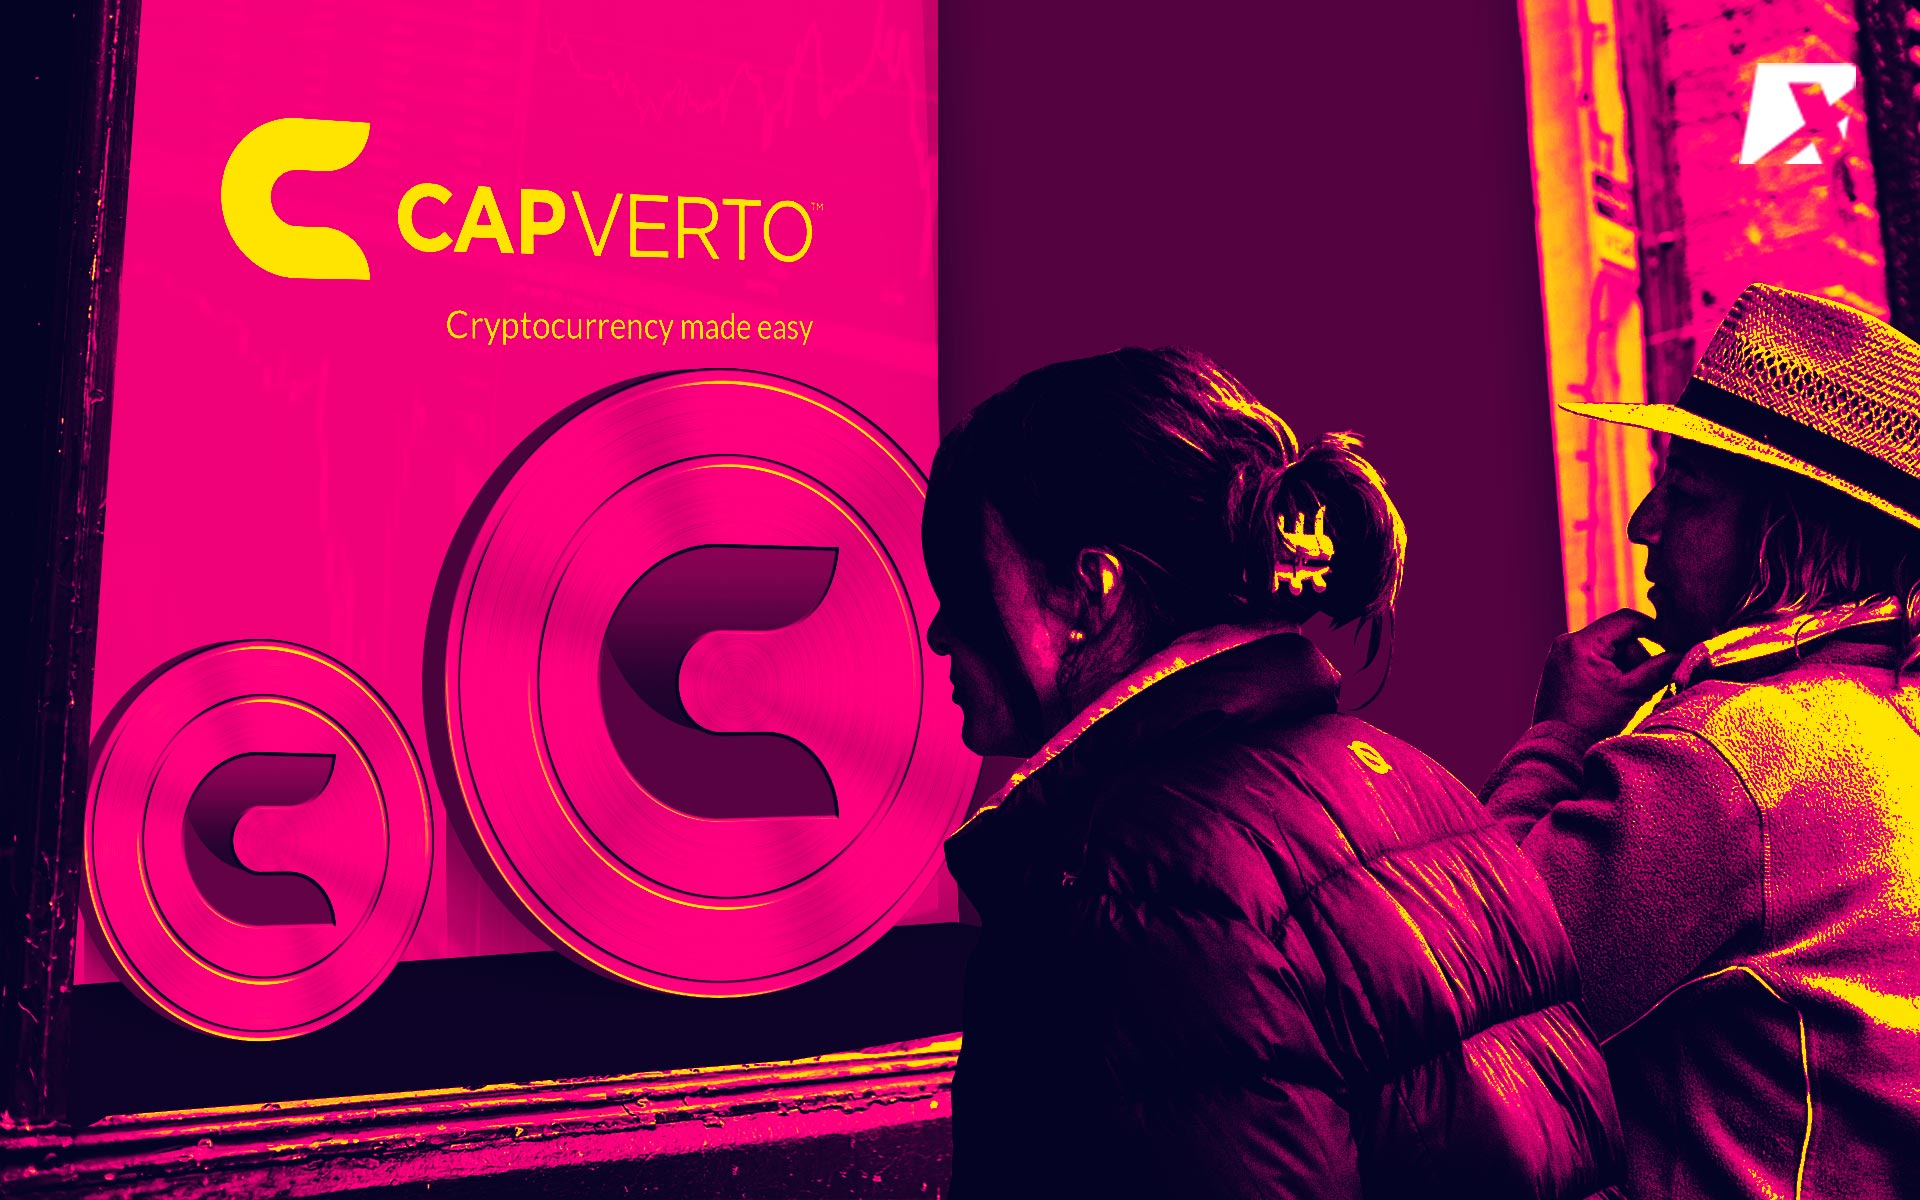 CAPVERTO's Bank-Like Platform Launch for Cryptocurrency Investments